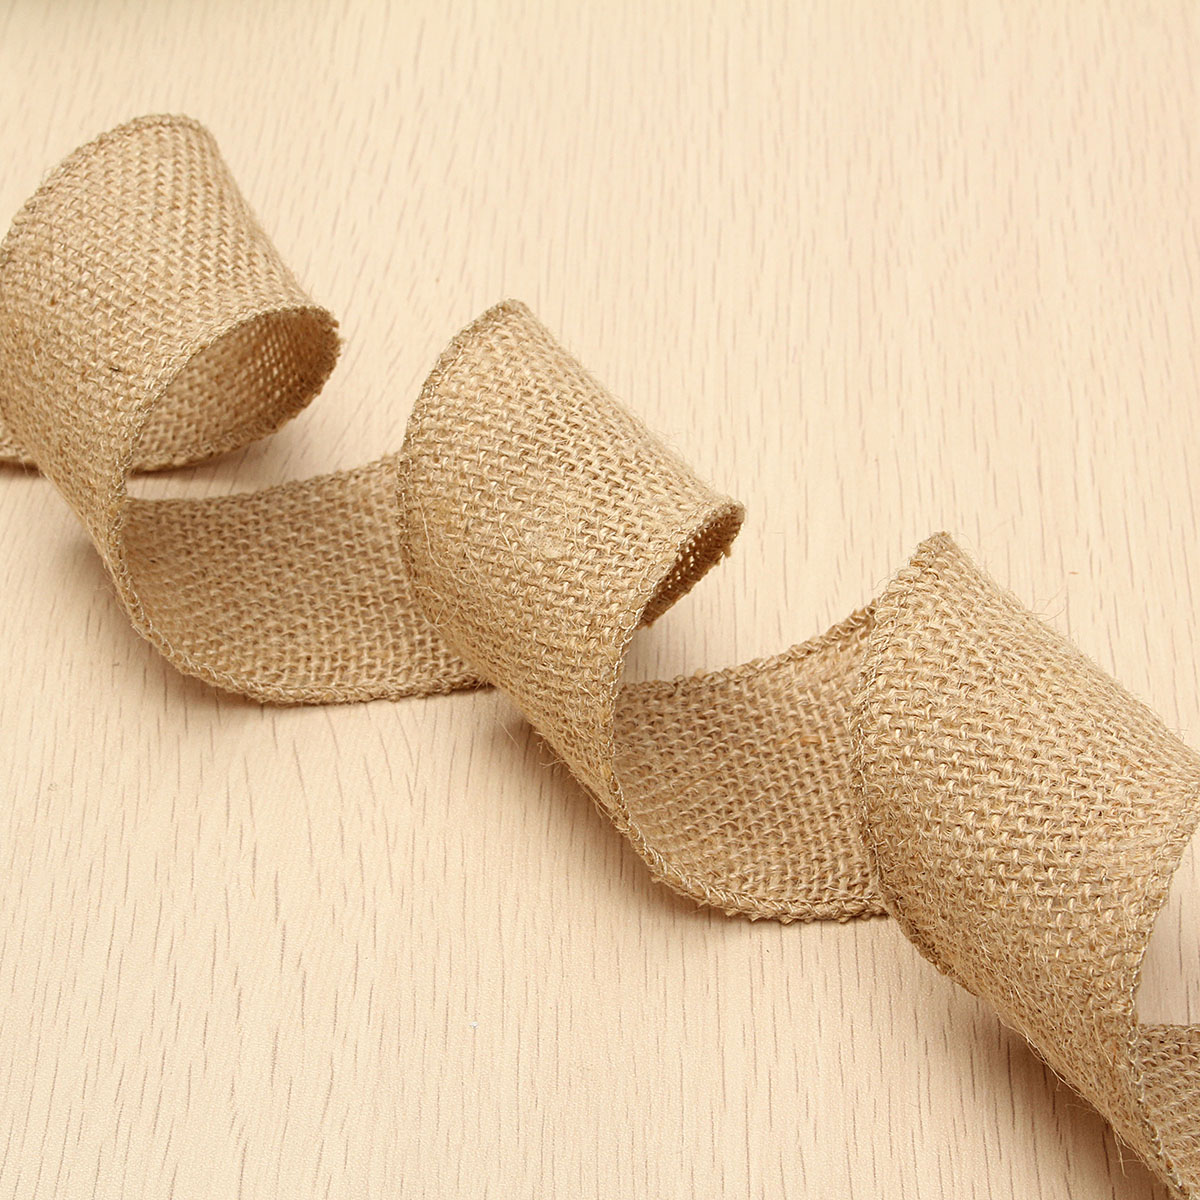 50mm Natural Jute Hessian Burlap Ribbon Roll Vintage Wedding Party Decor Craft Belt Strap